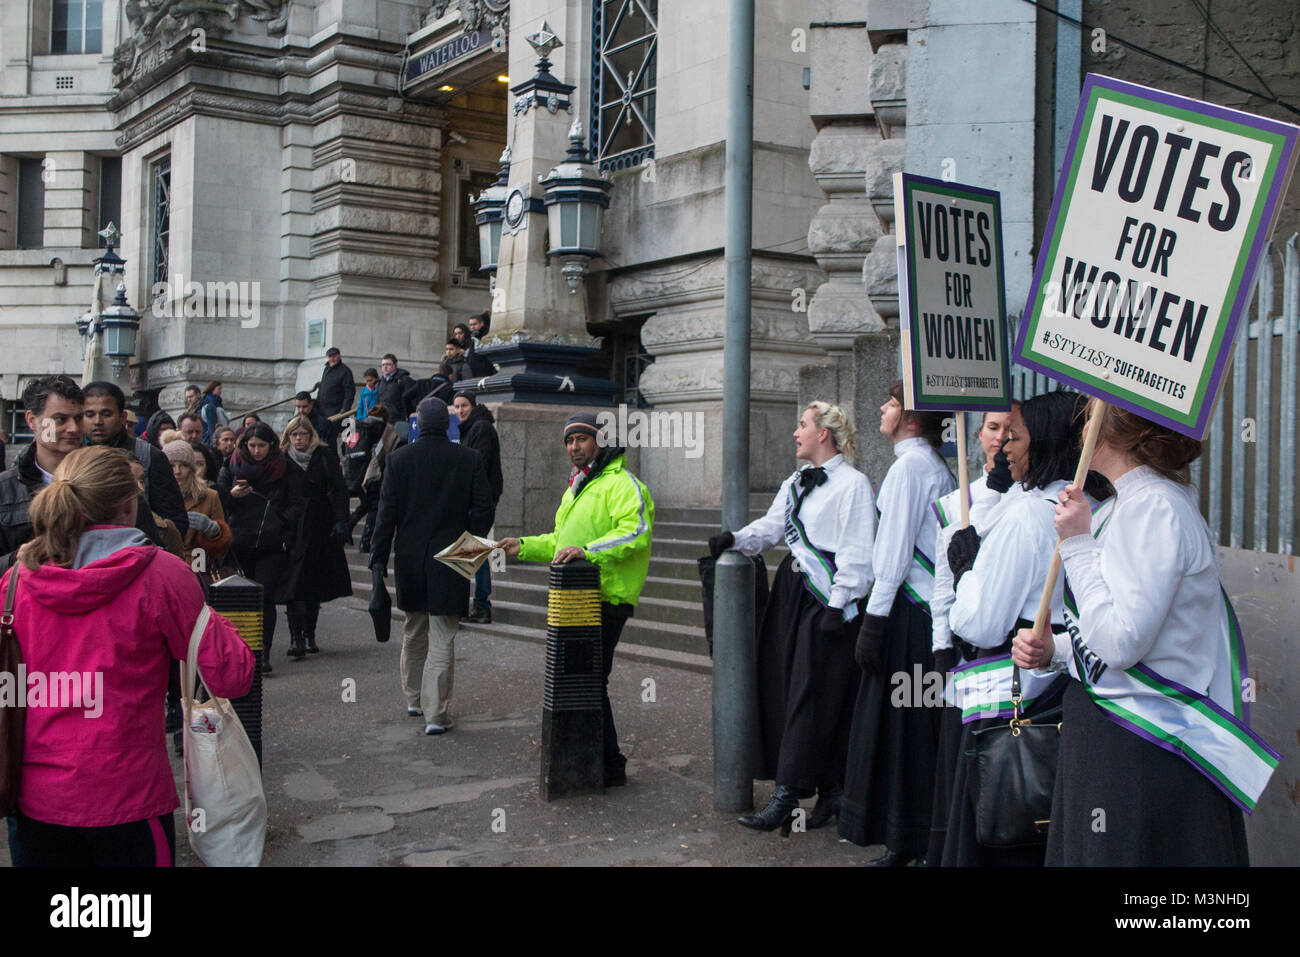 Suffragettes outside Waterloo station in 2018 looking for votes for women through deeds not words - Stock Image